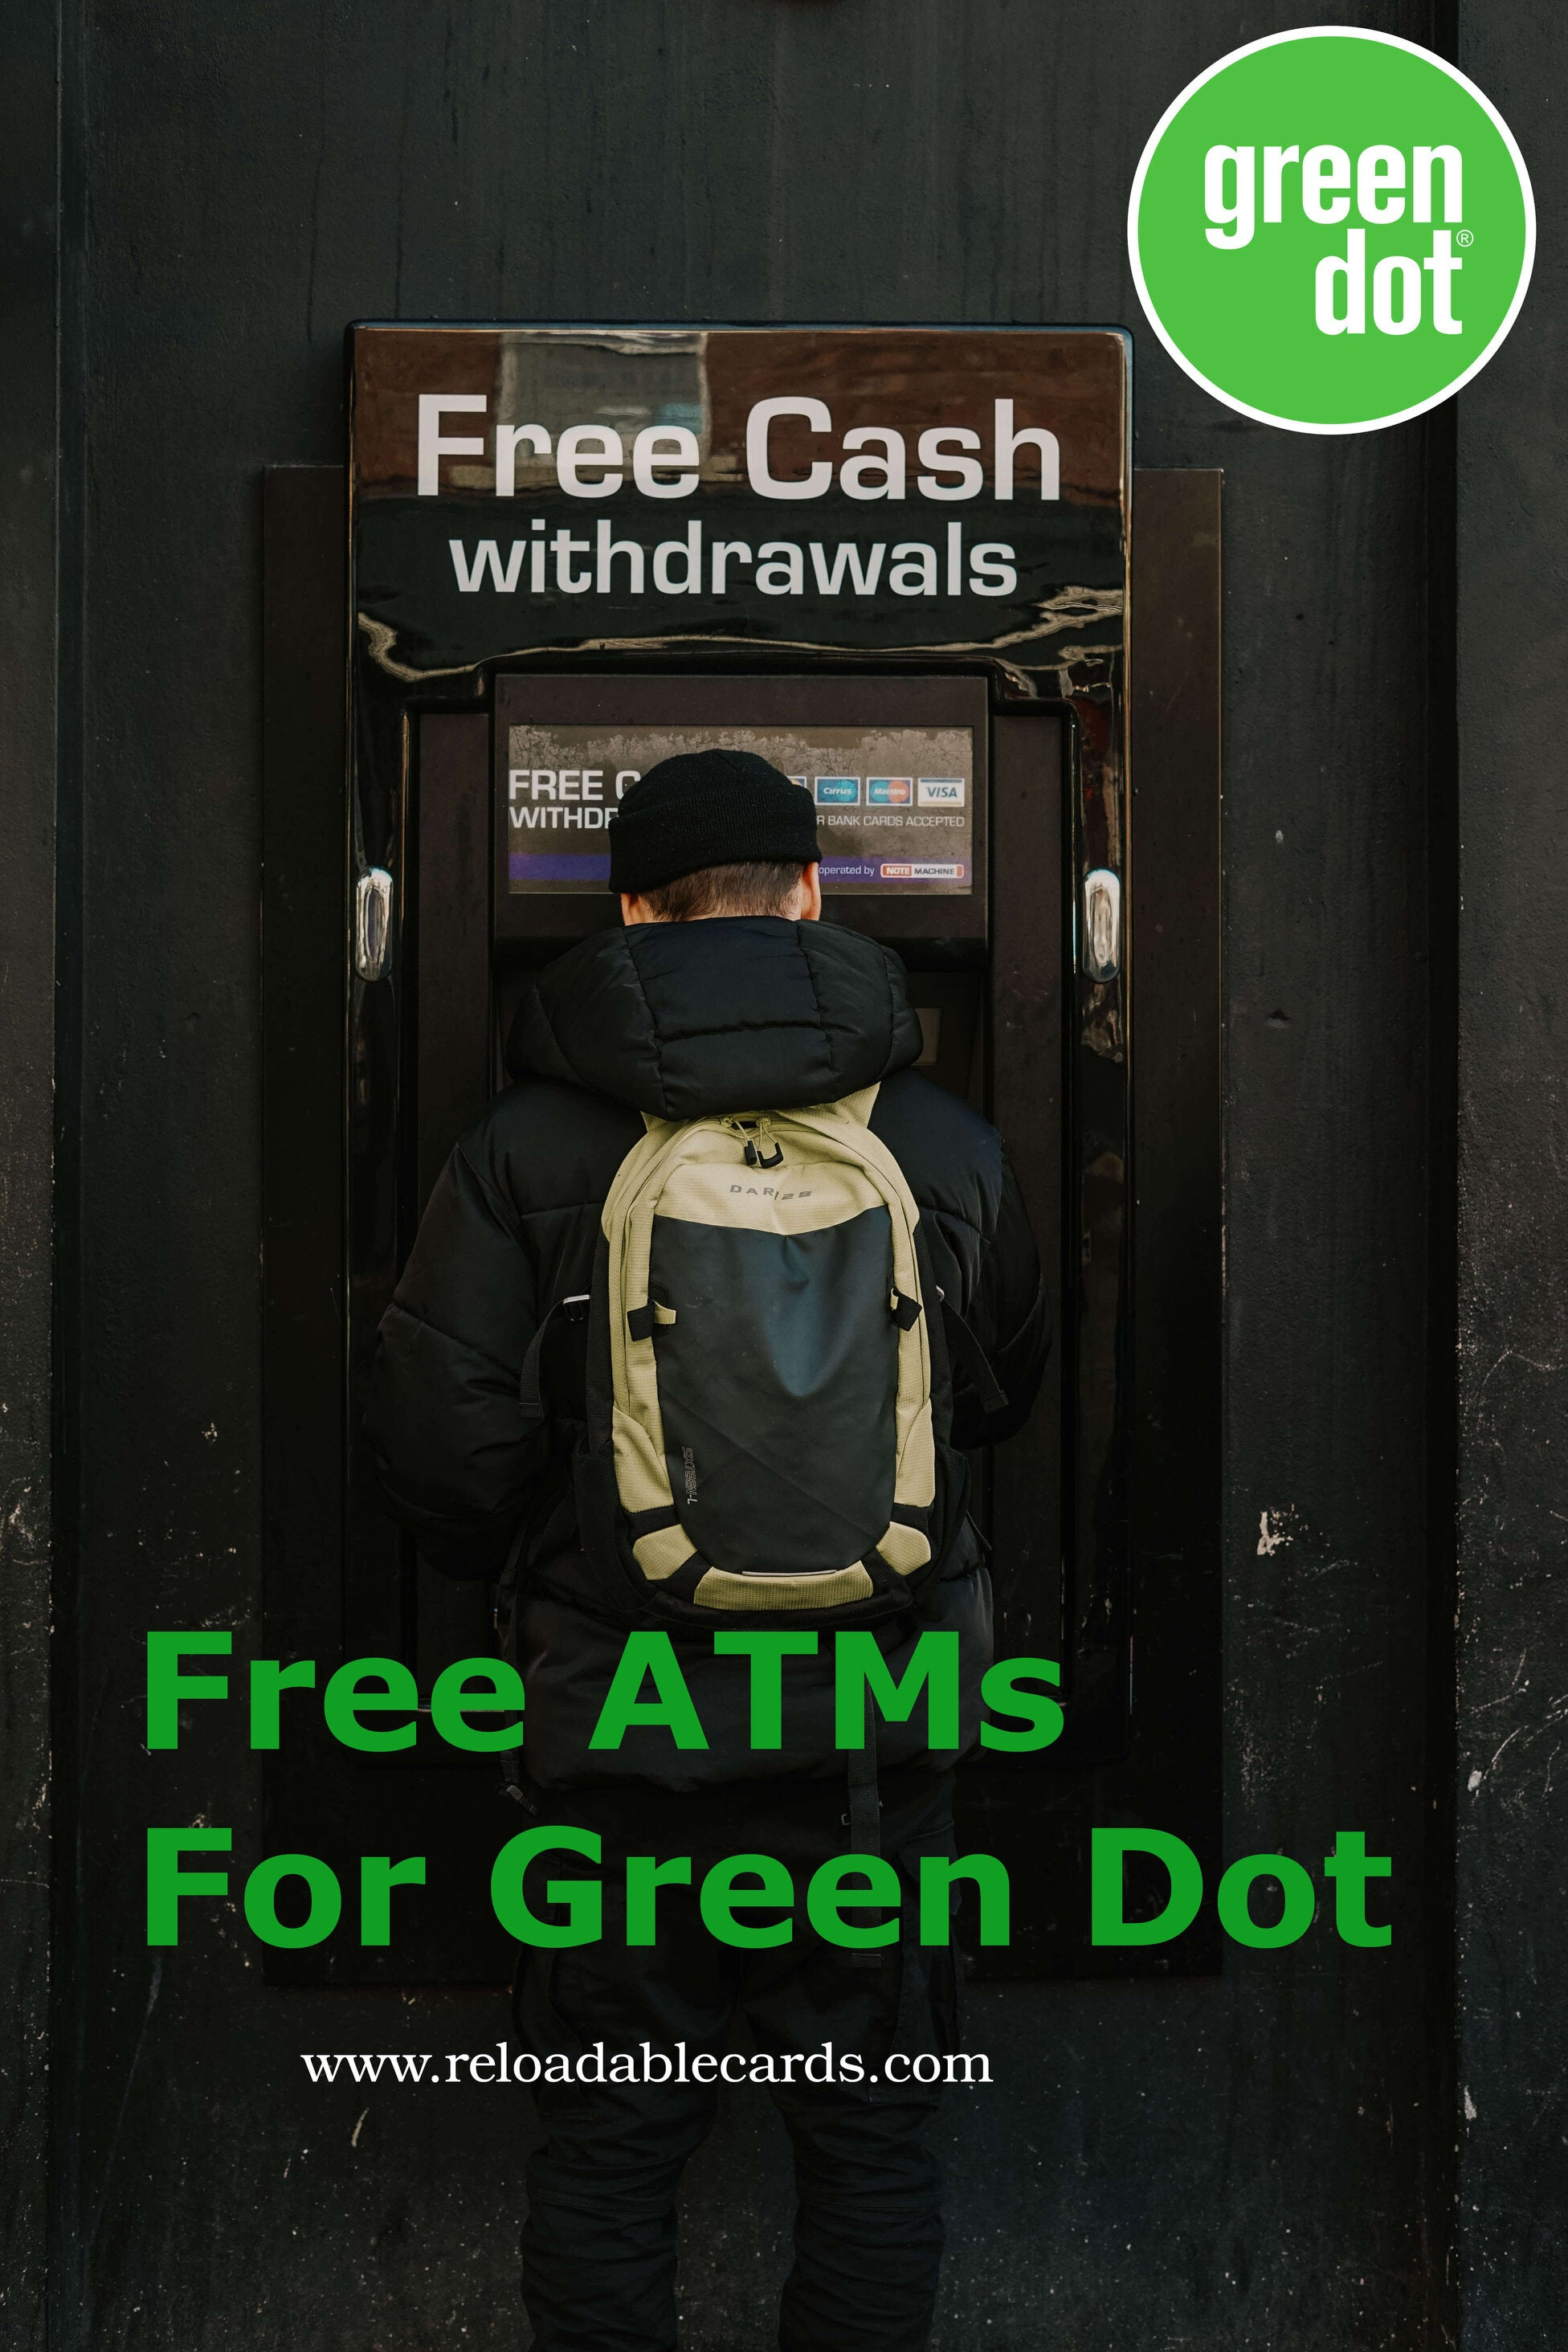 free atms for Green dot